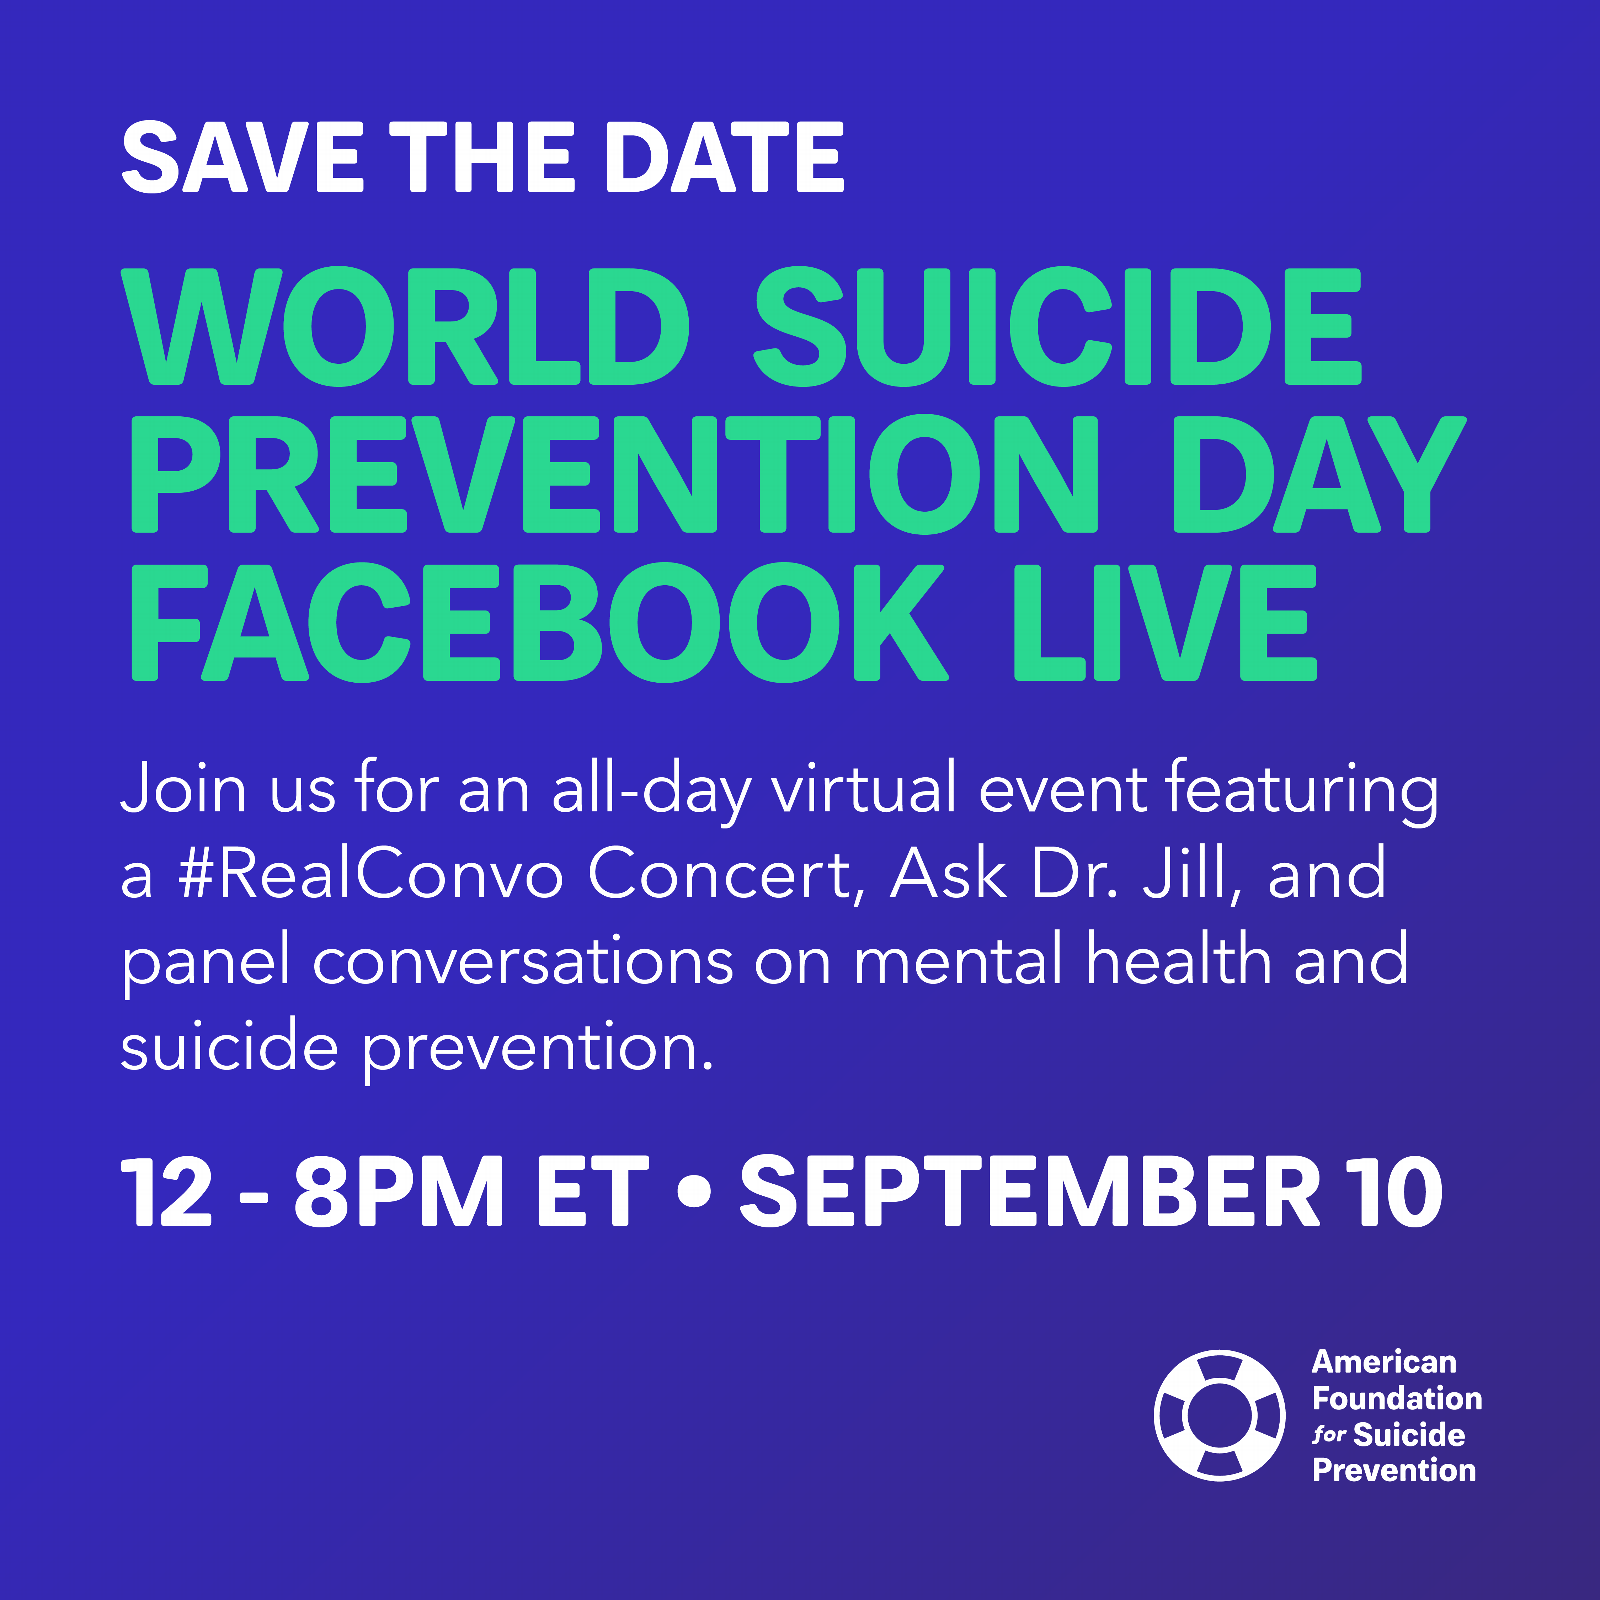 Save The Date - September 10, 2021 - World Suicide Prevention Day Facebook Live Event